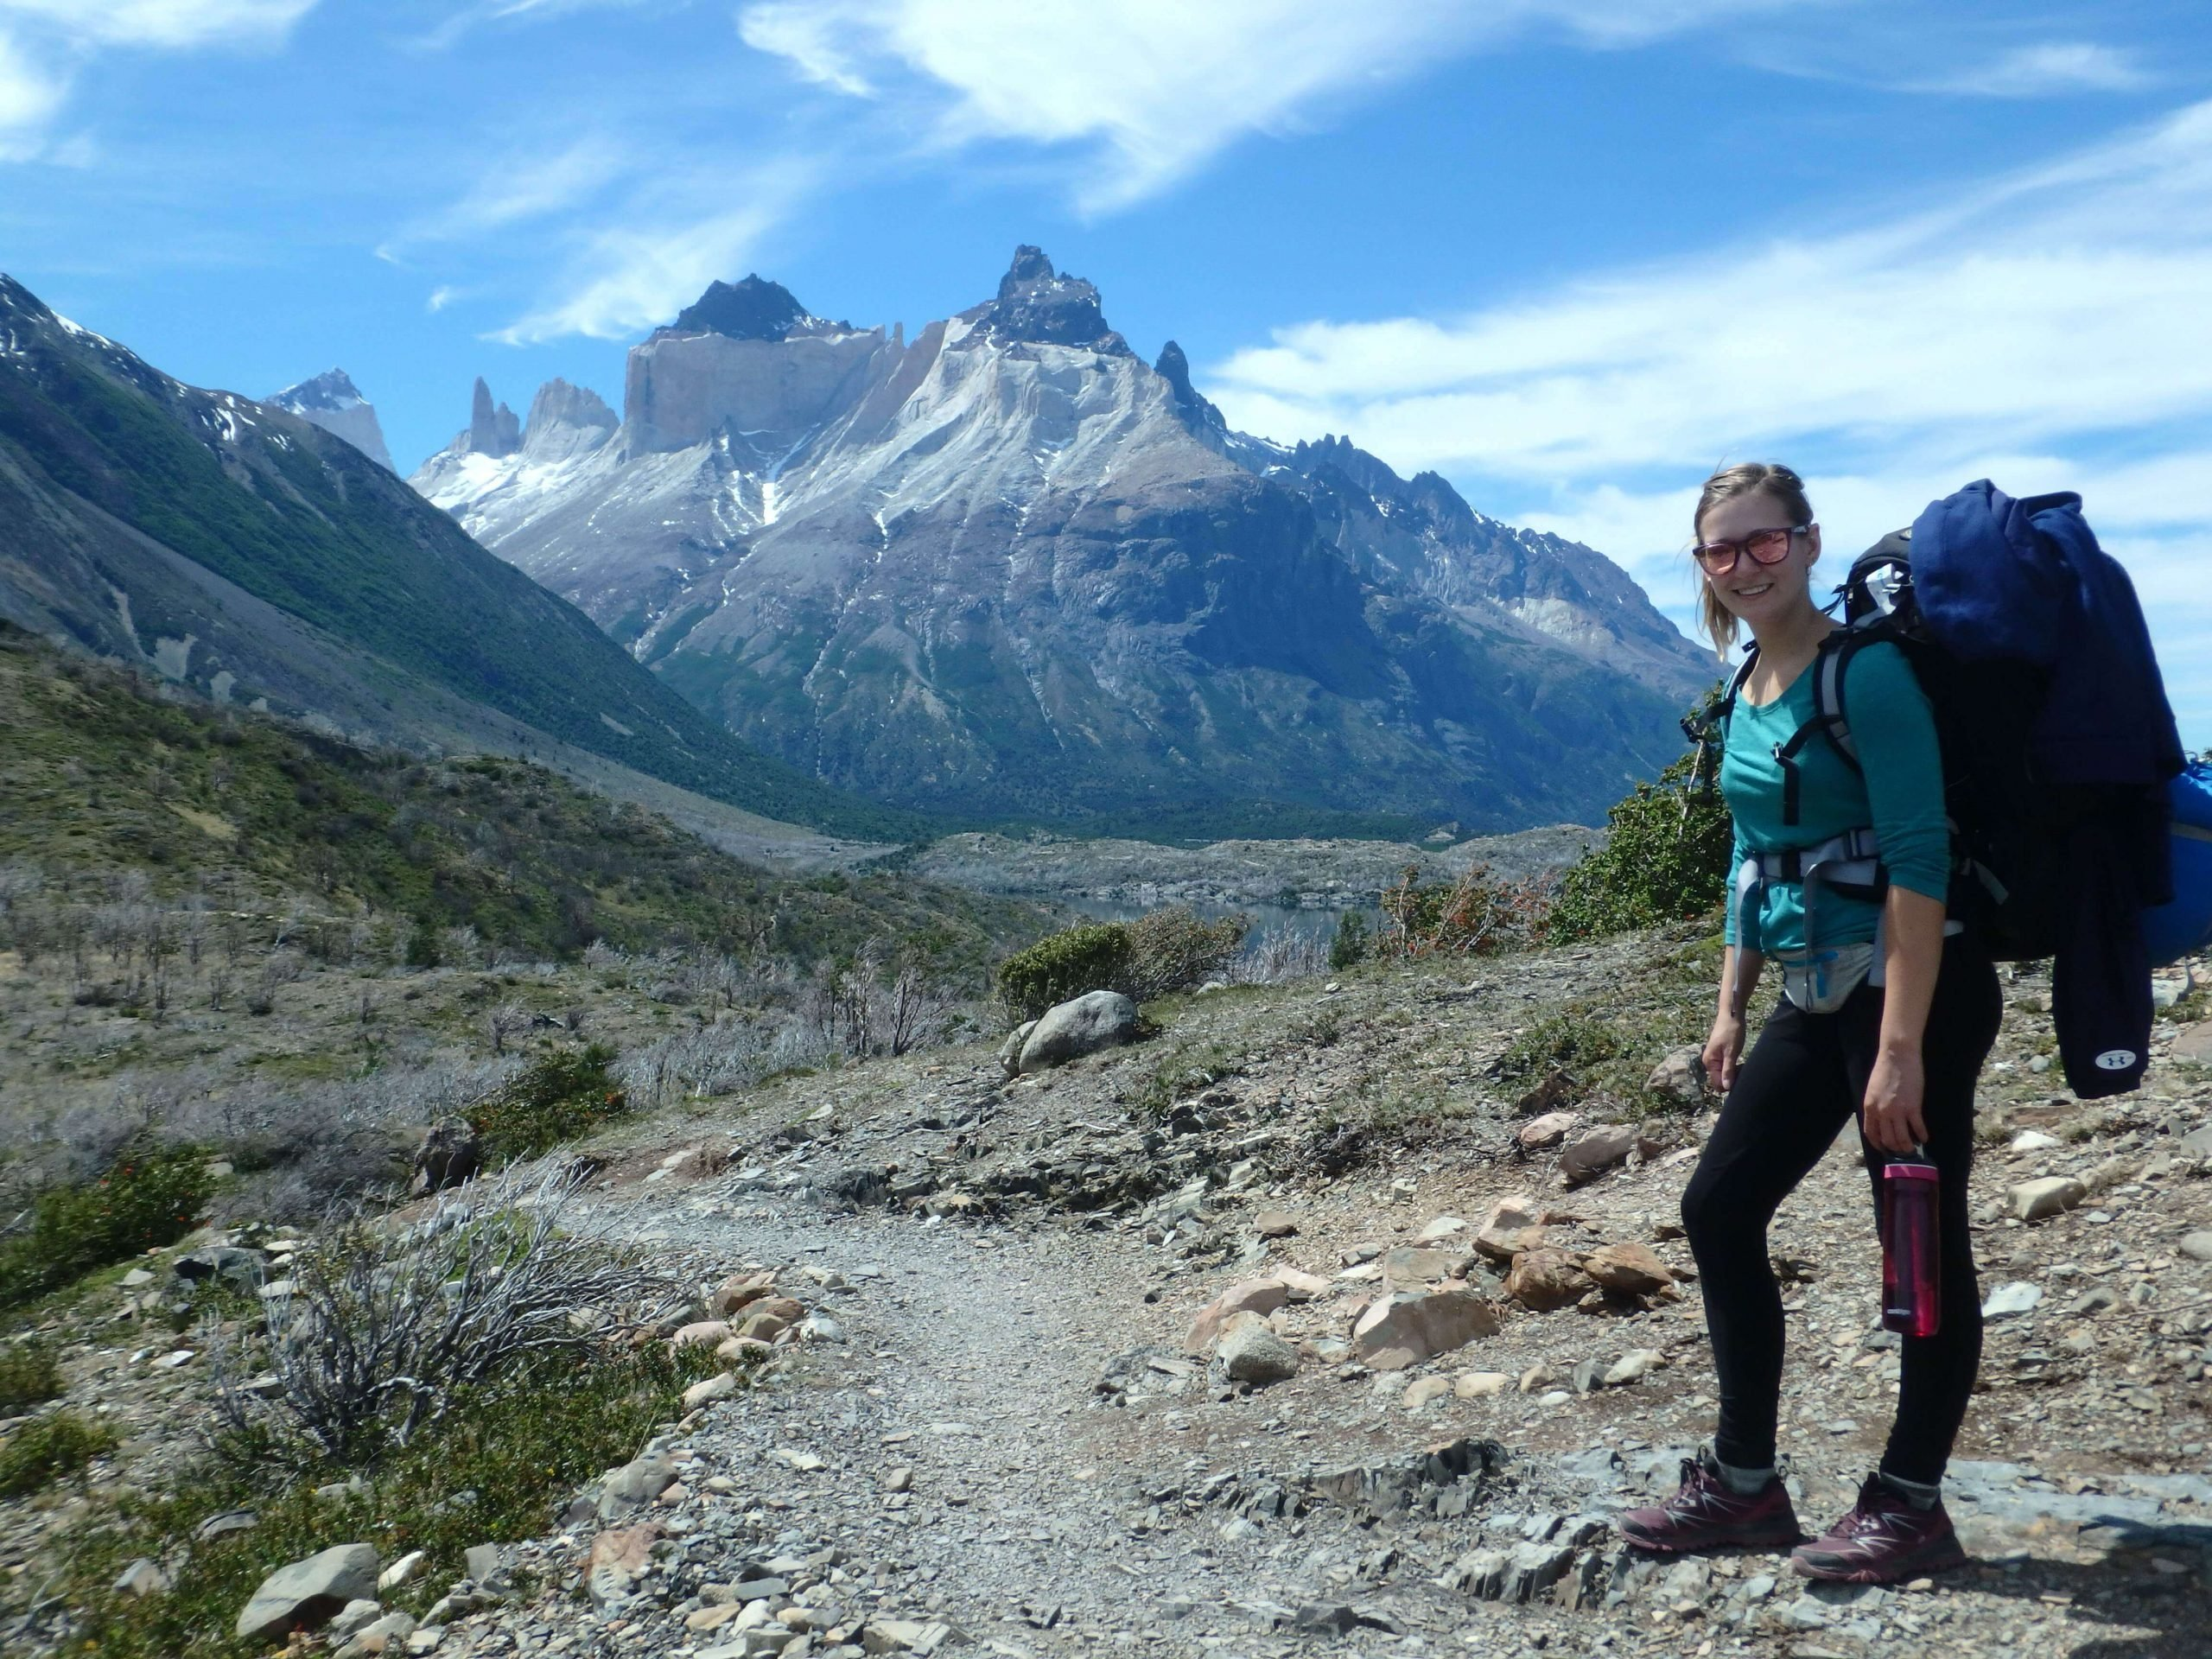 Torres del Paine 5-day Hike: Bailey's Story